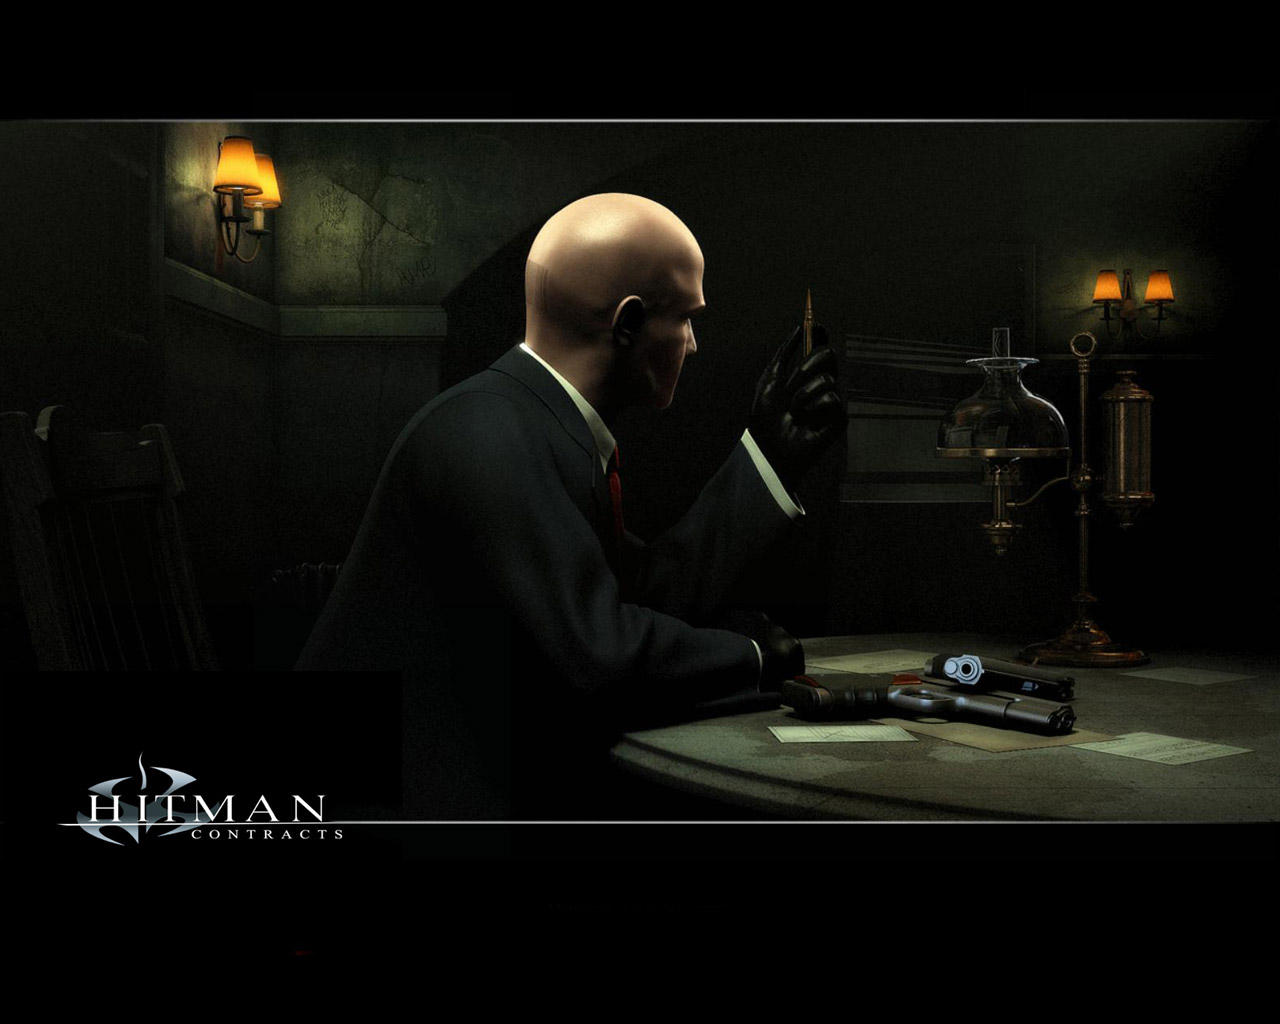 Nice wallpapers Hitman: Contracts 1280x1024px